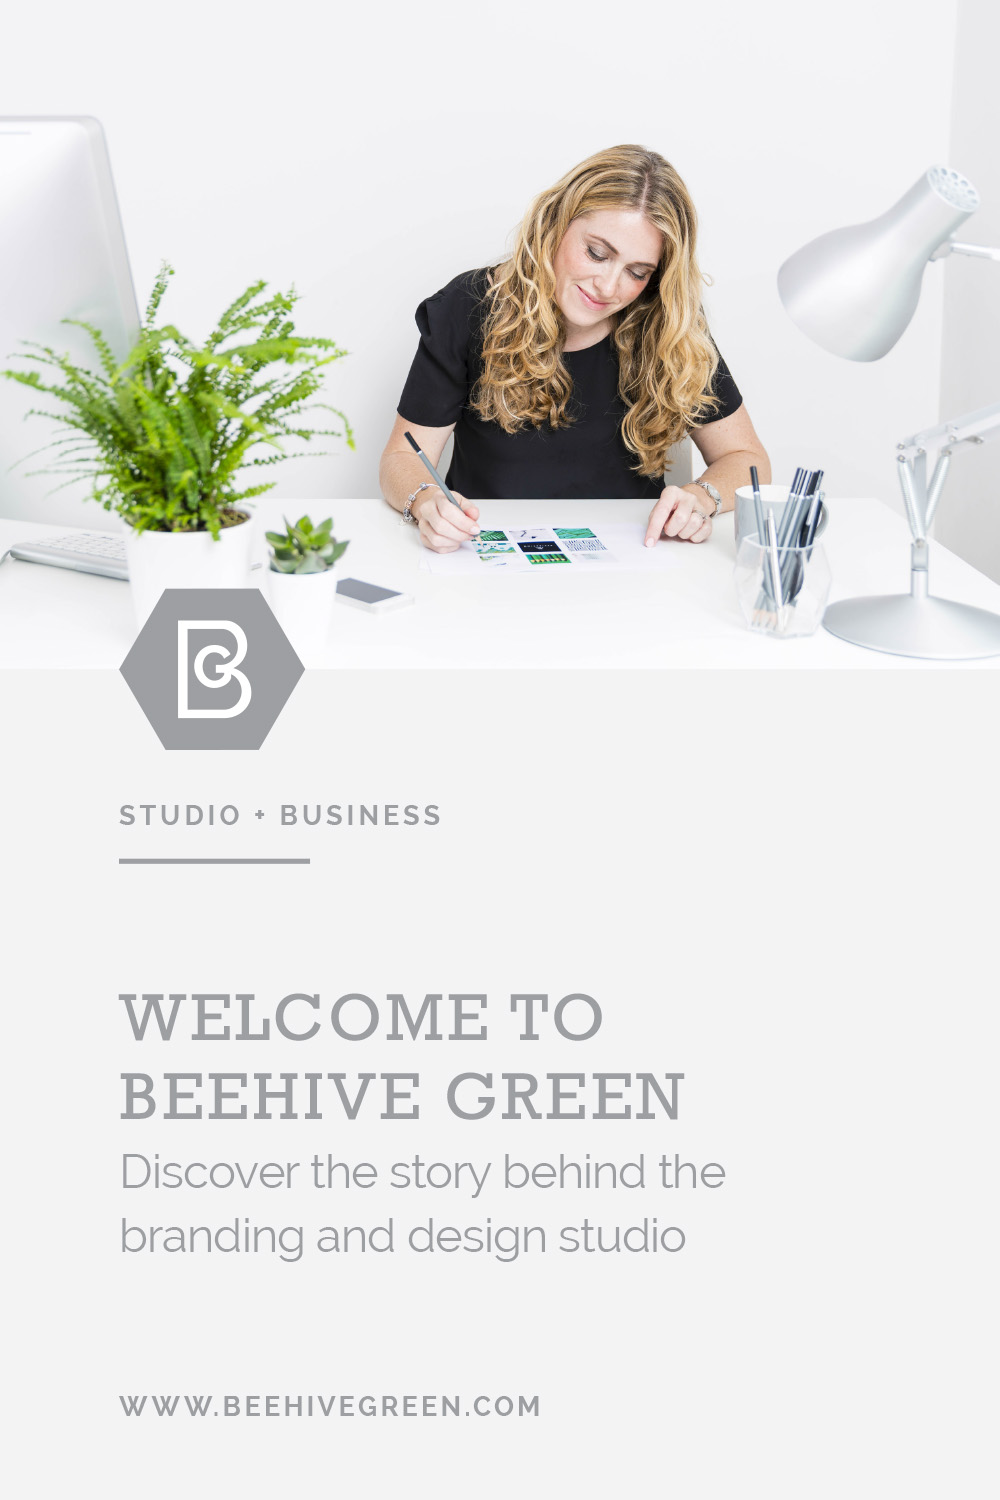 Welcome to Beehive Green | Beehive Green